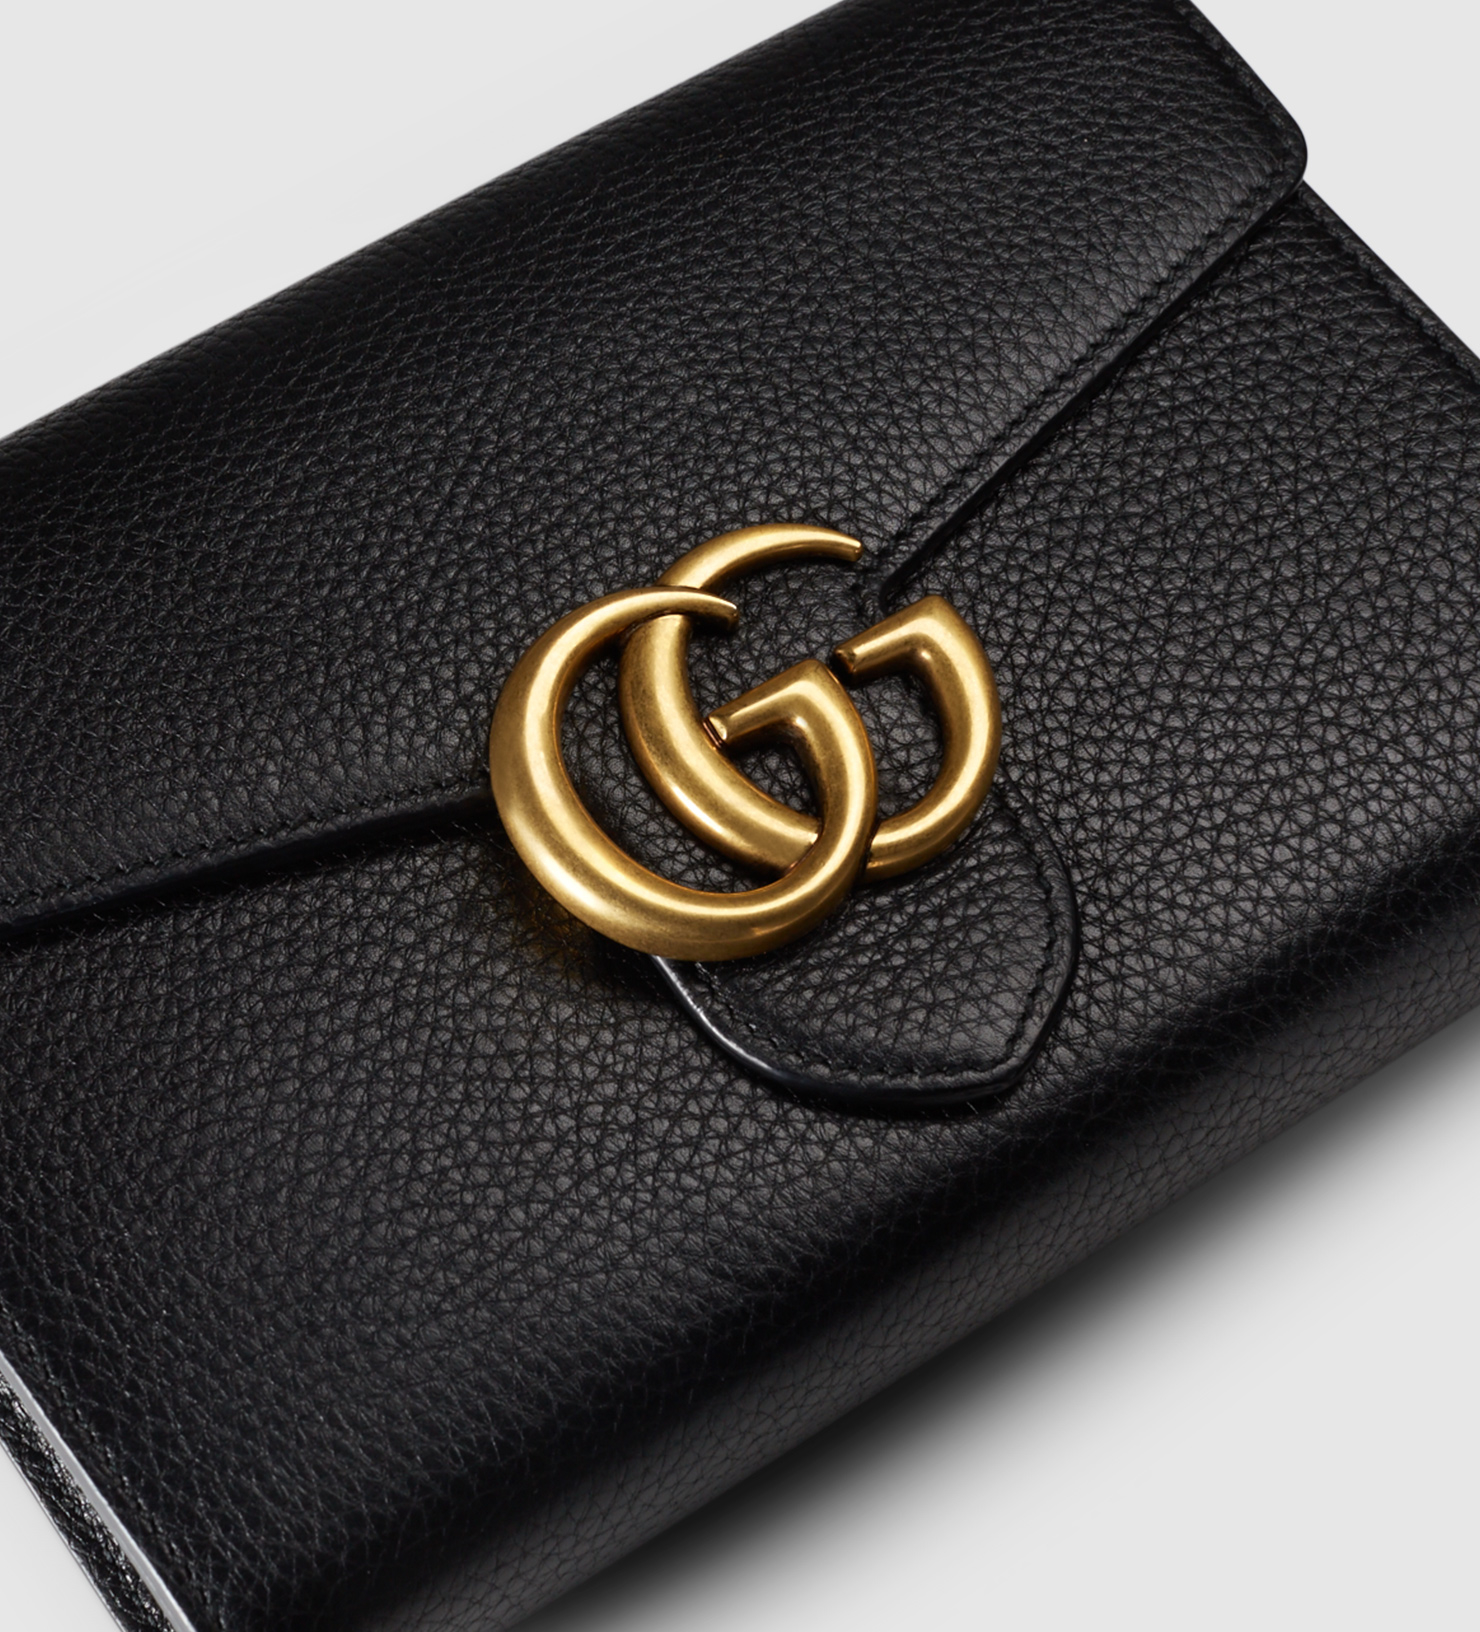 8474e399b357 Gucci Gg Marmont Leather Chain Wallet in Black - Lyst